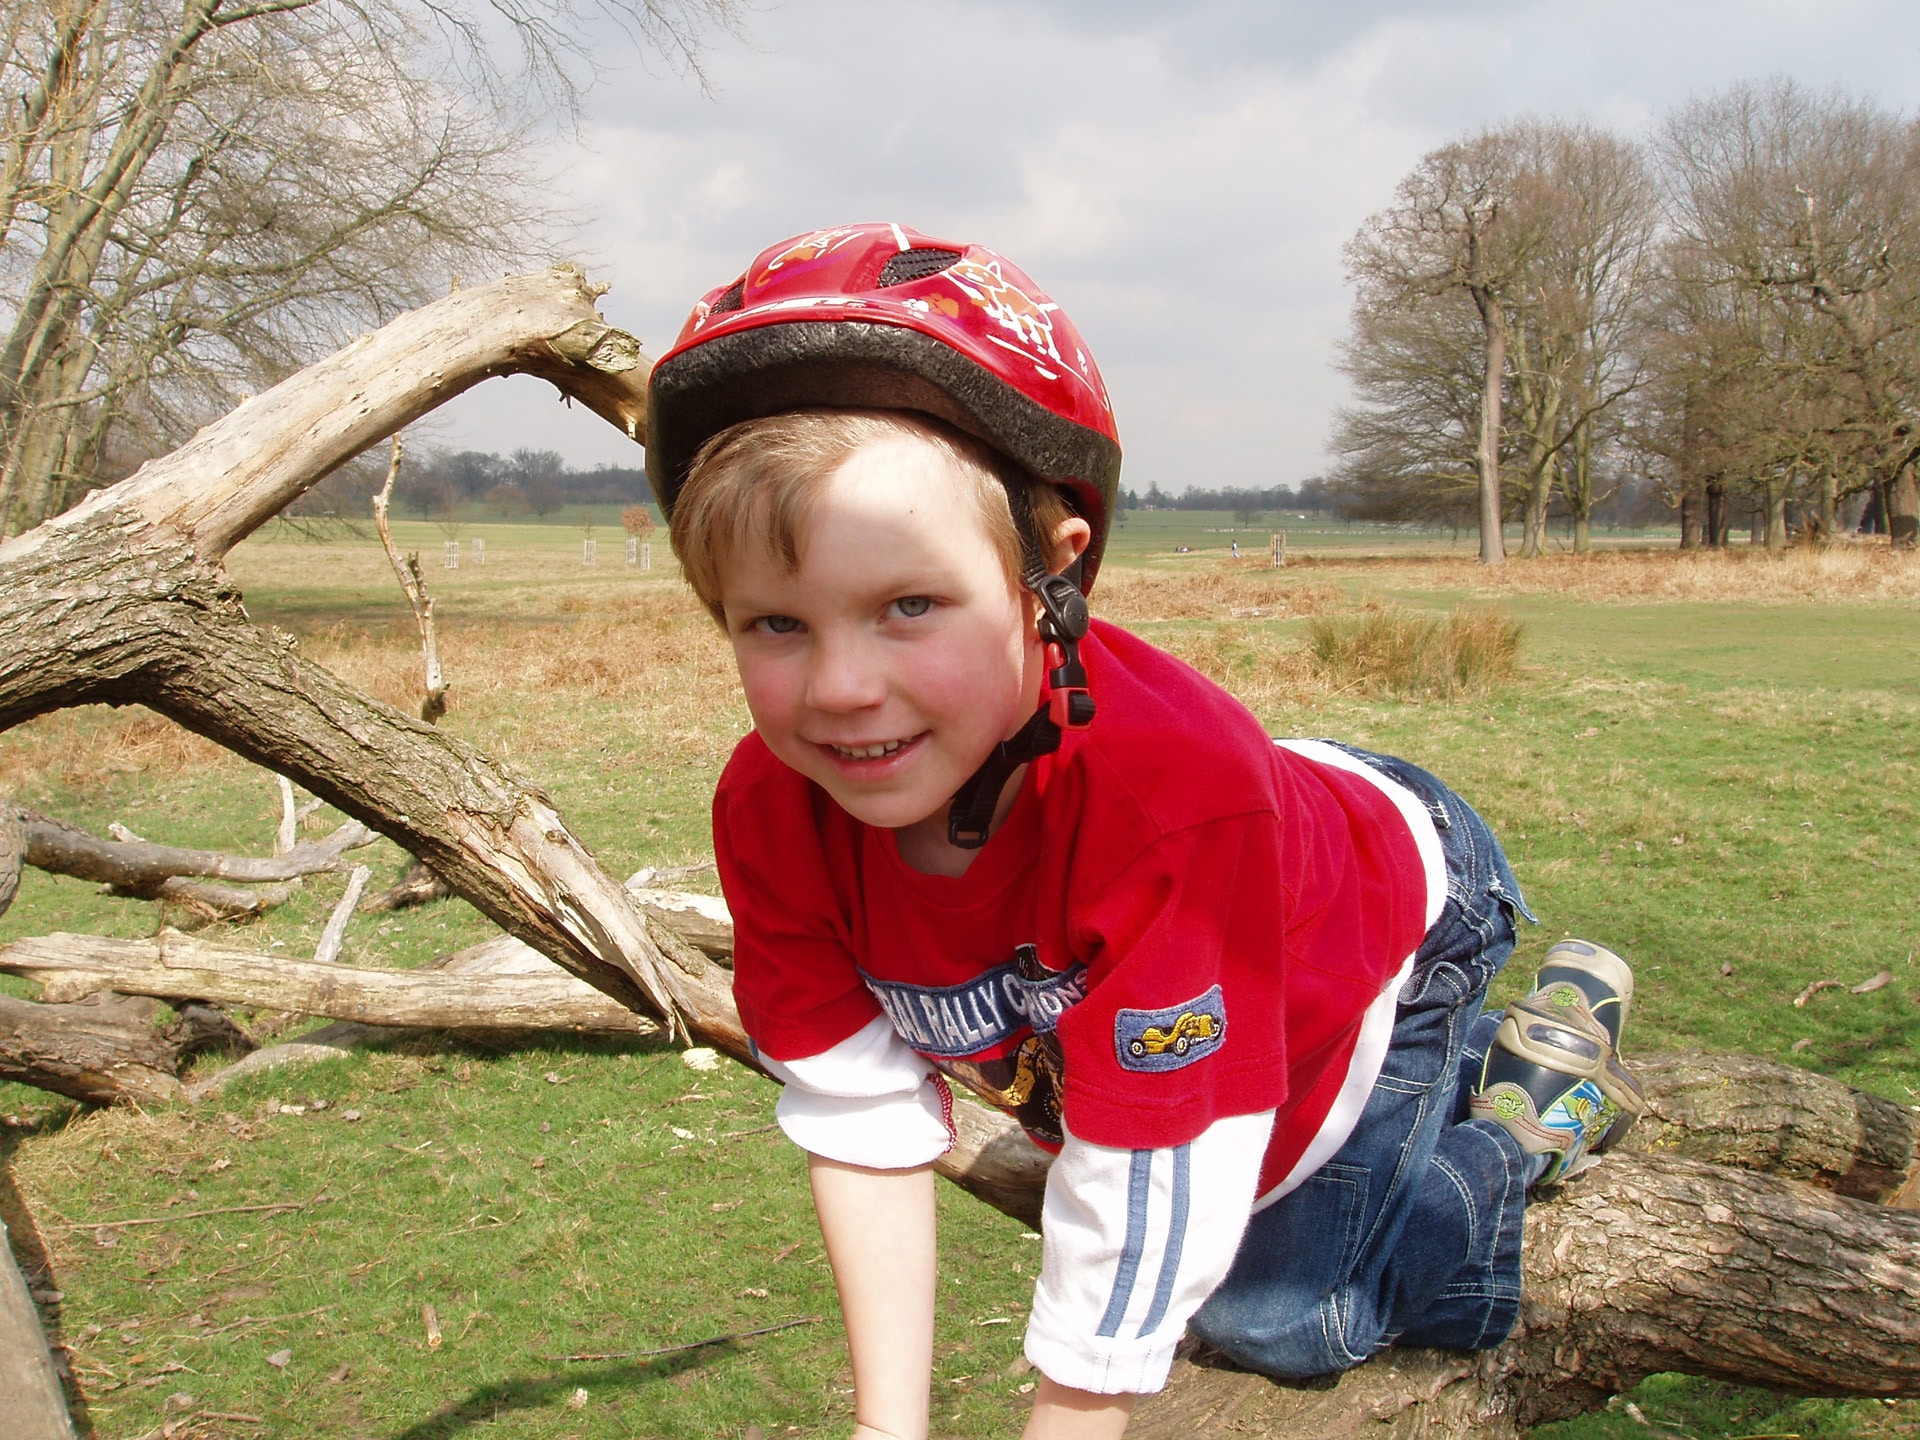 5 most common causes of serious injury for children